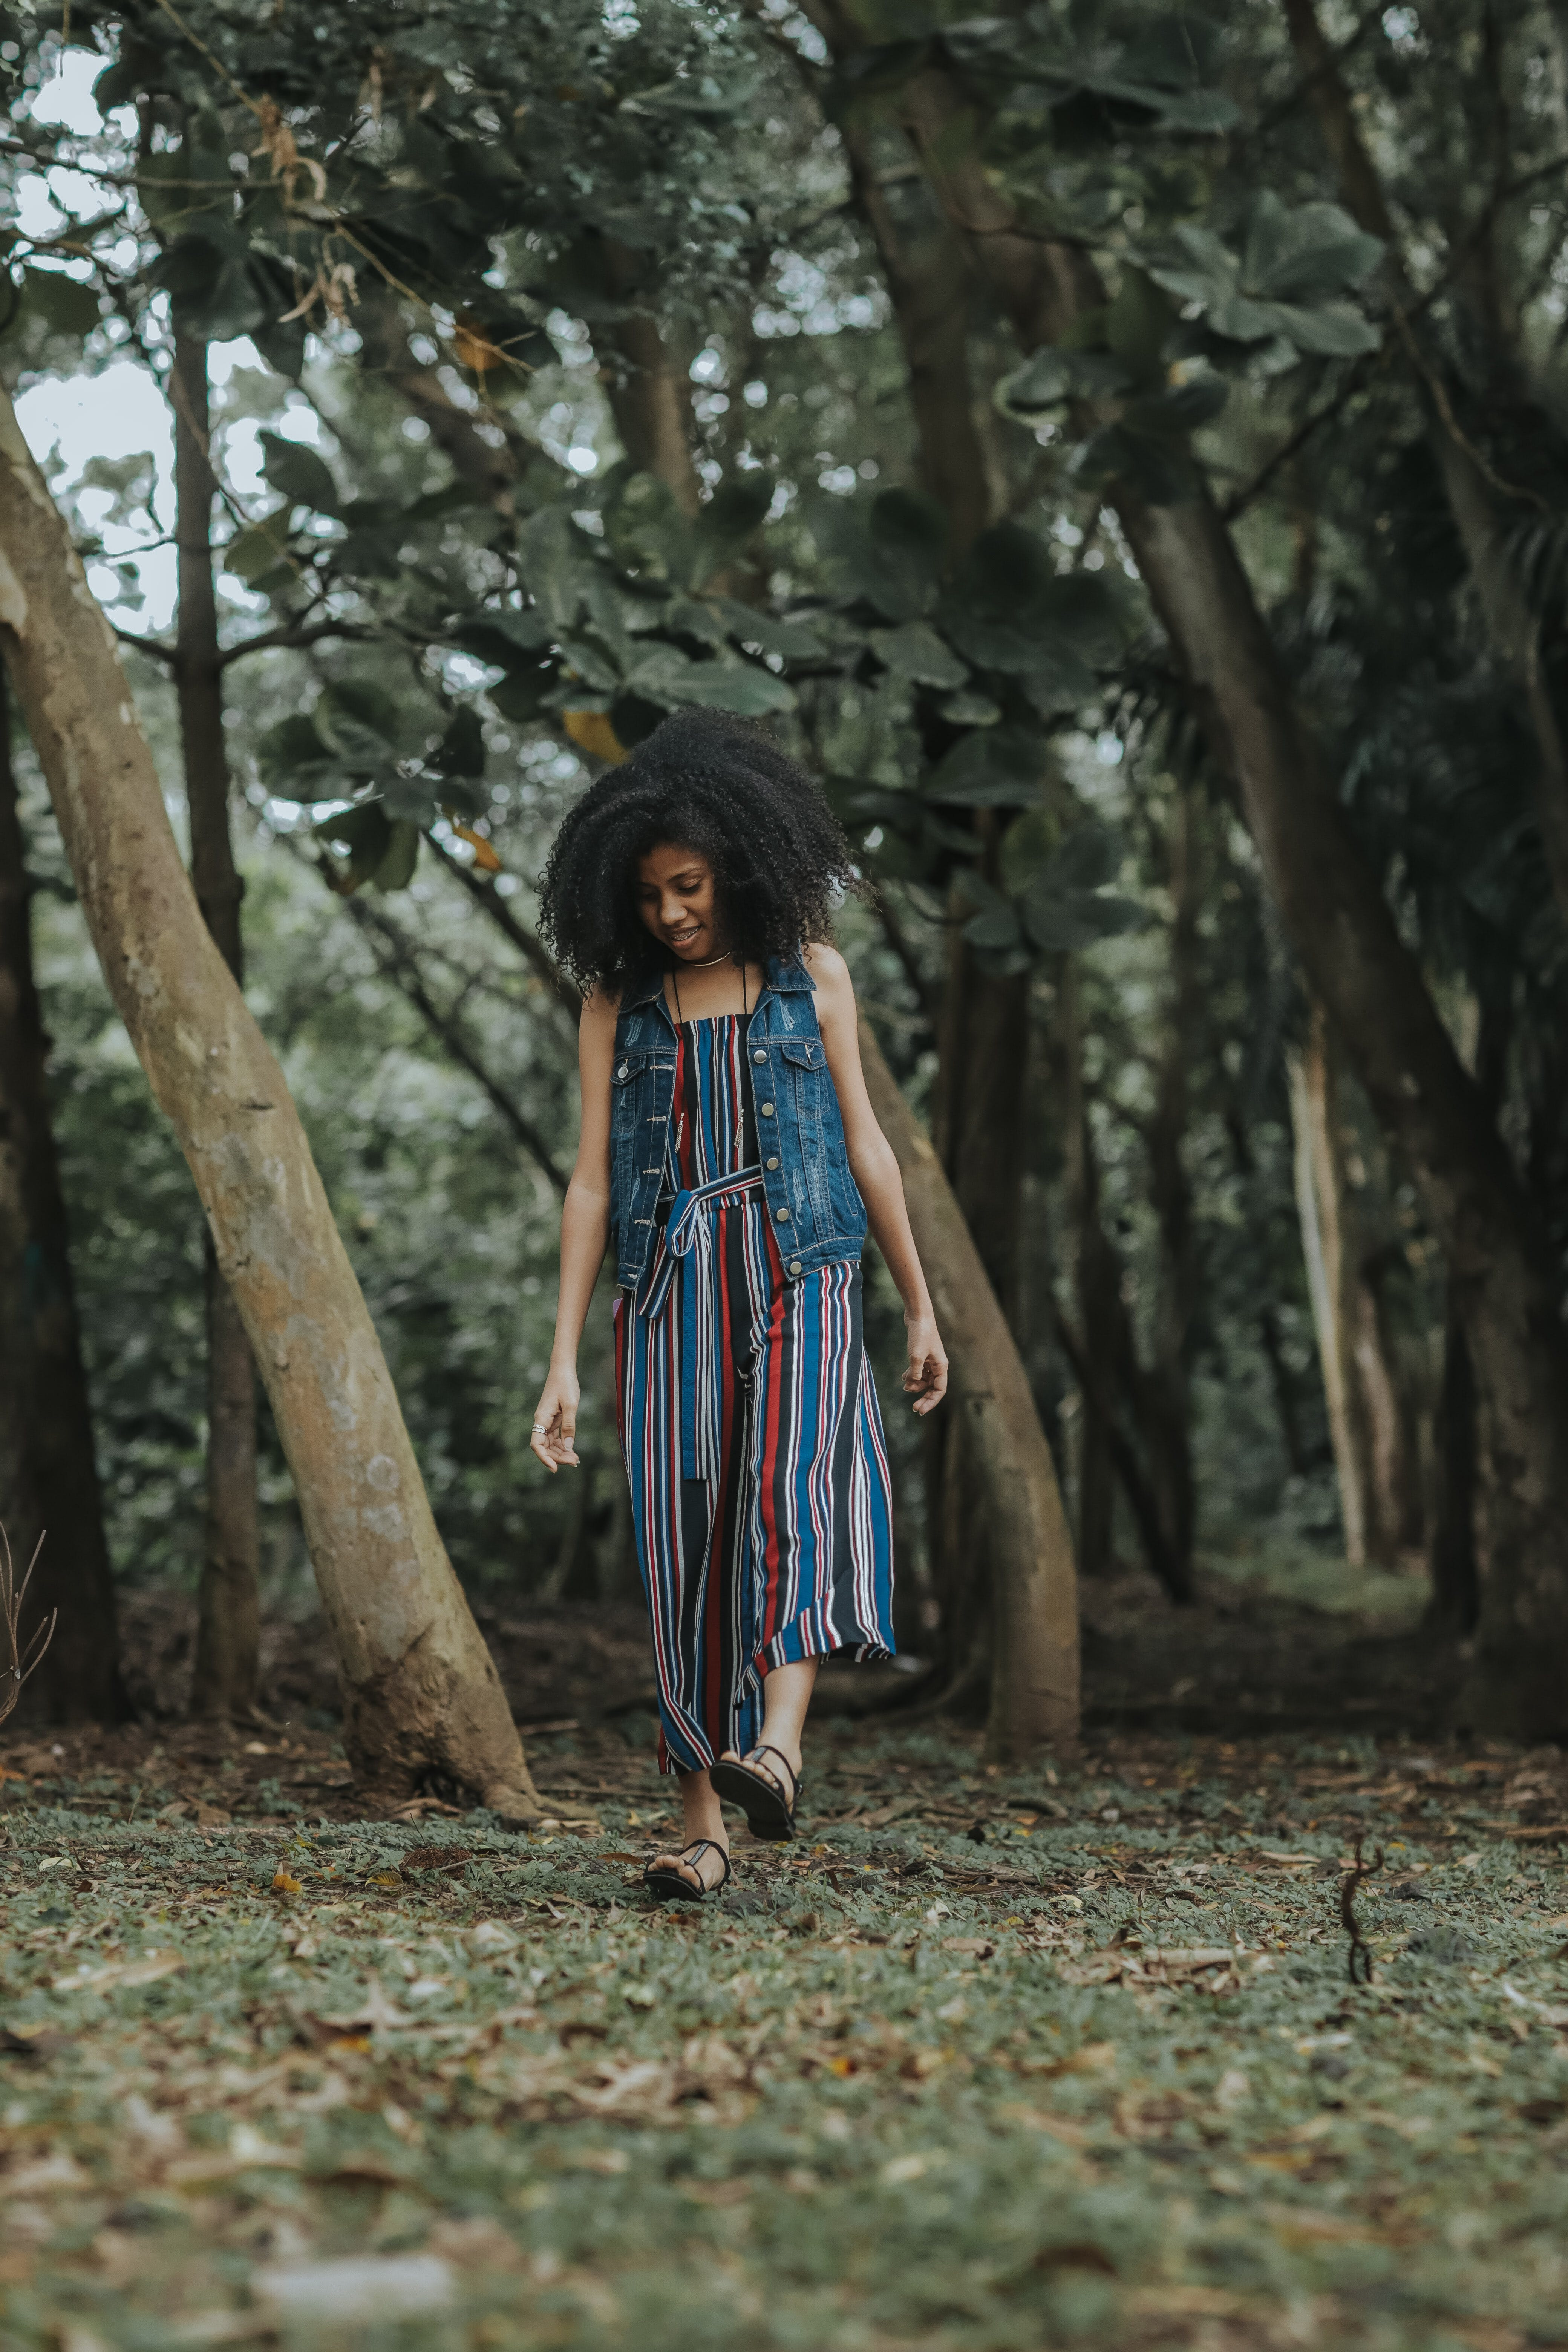 Woman Walking on Forest